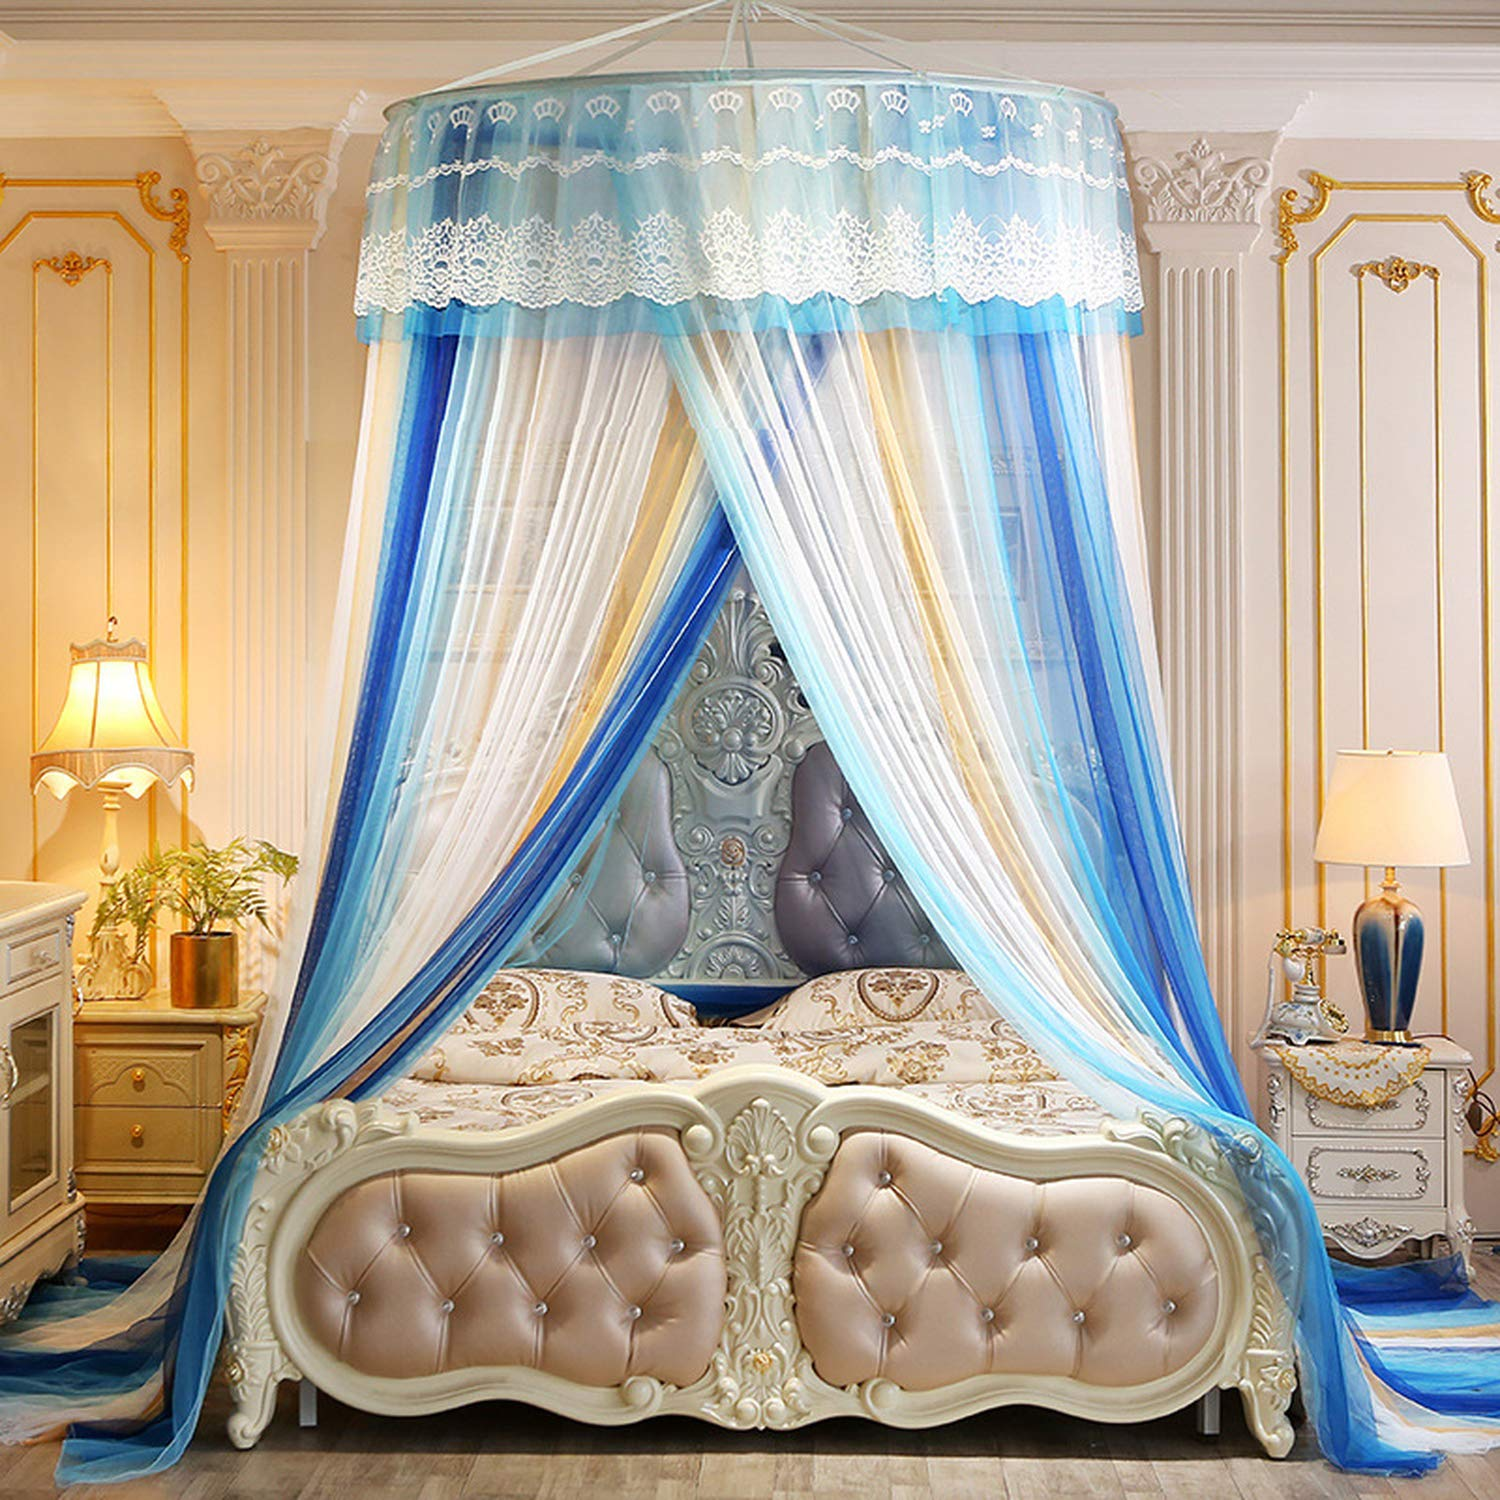 Mosquito net for Double Bed Hanging Dome Kids Baby Bedding Bed Home Decor Repellent Tent Insect Reject Canopy Bed,Blue by SuWuan mosquito net (Image #2)